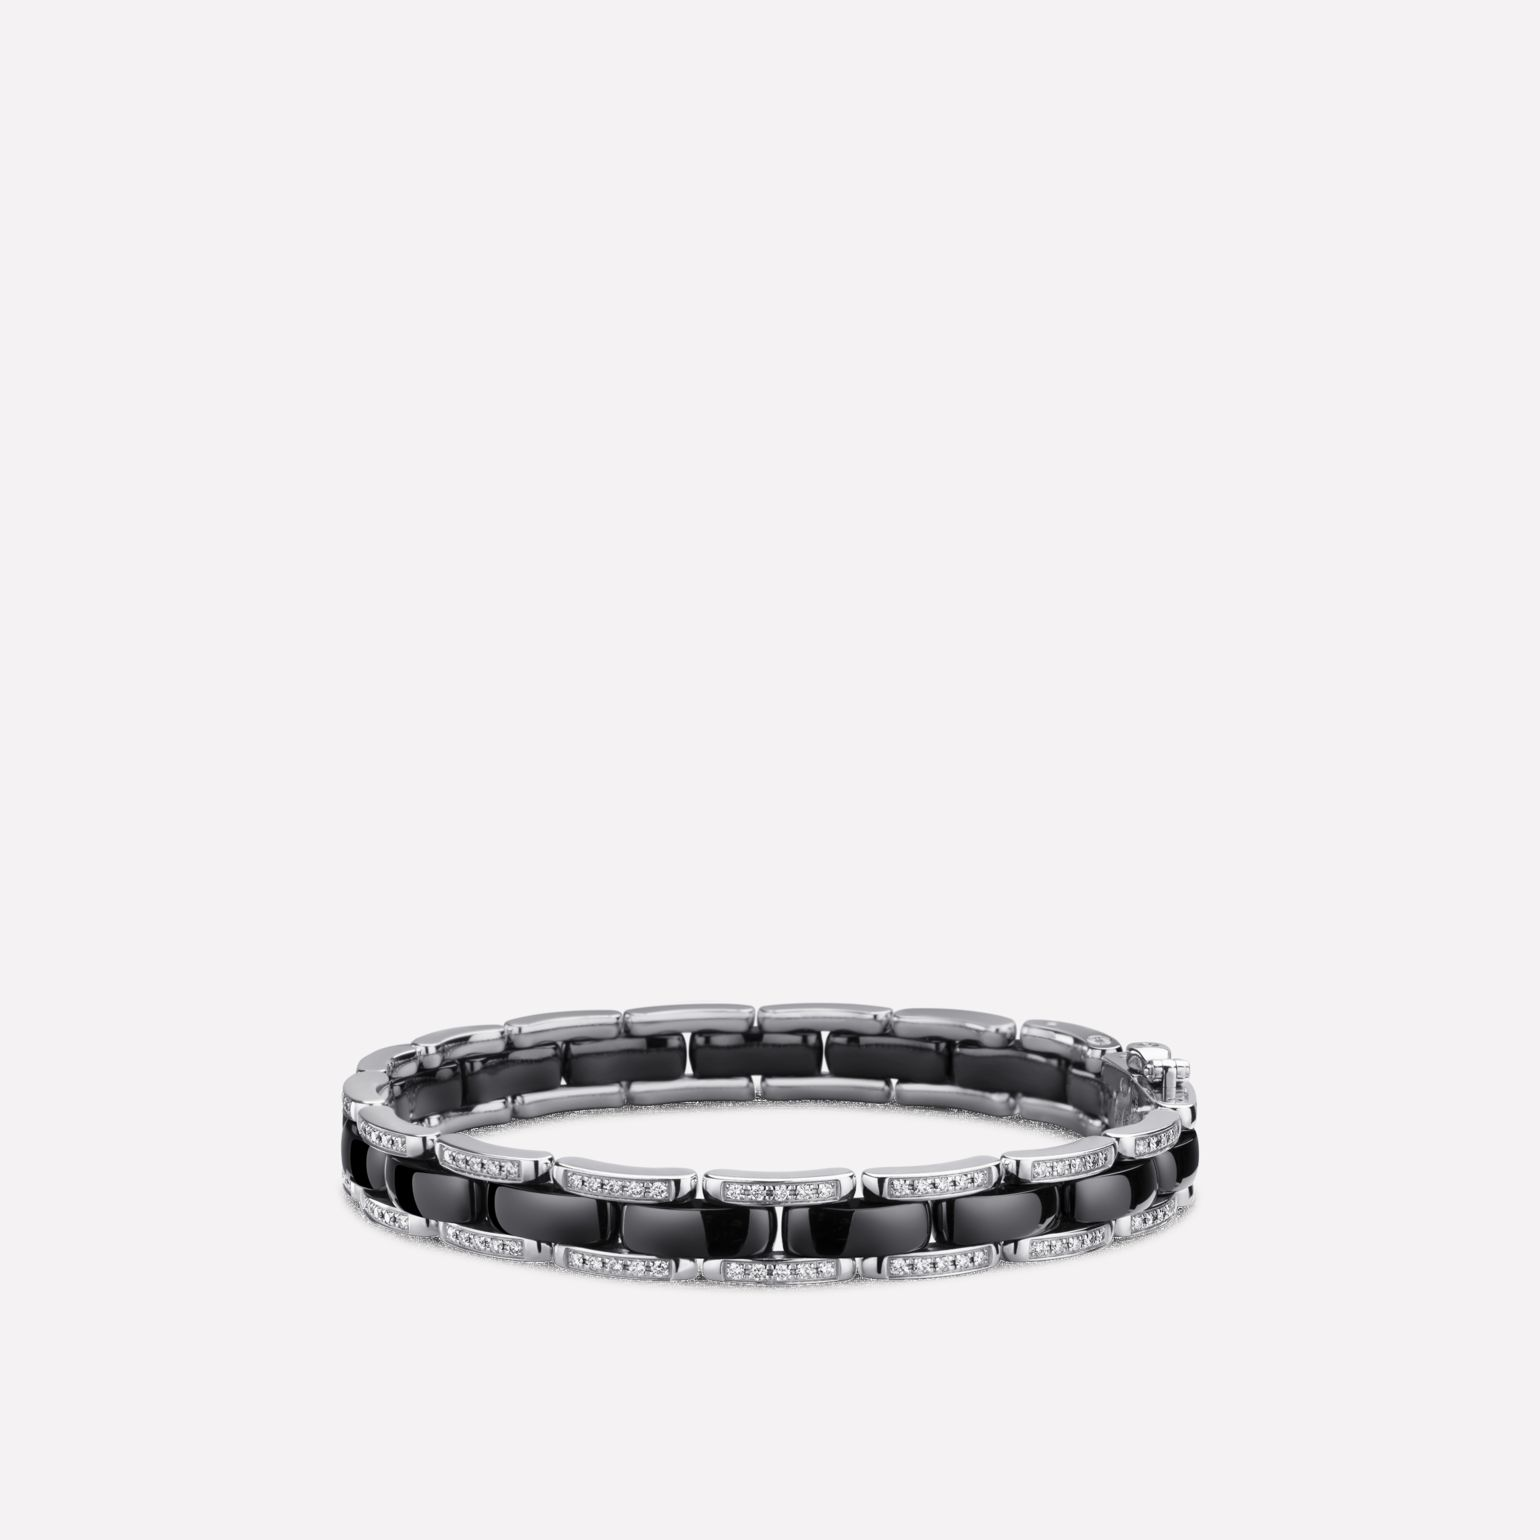 Ultra Bracelet Ultra bracelet in black ceramic, 18K white gold and diamonds. Flexible version.